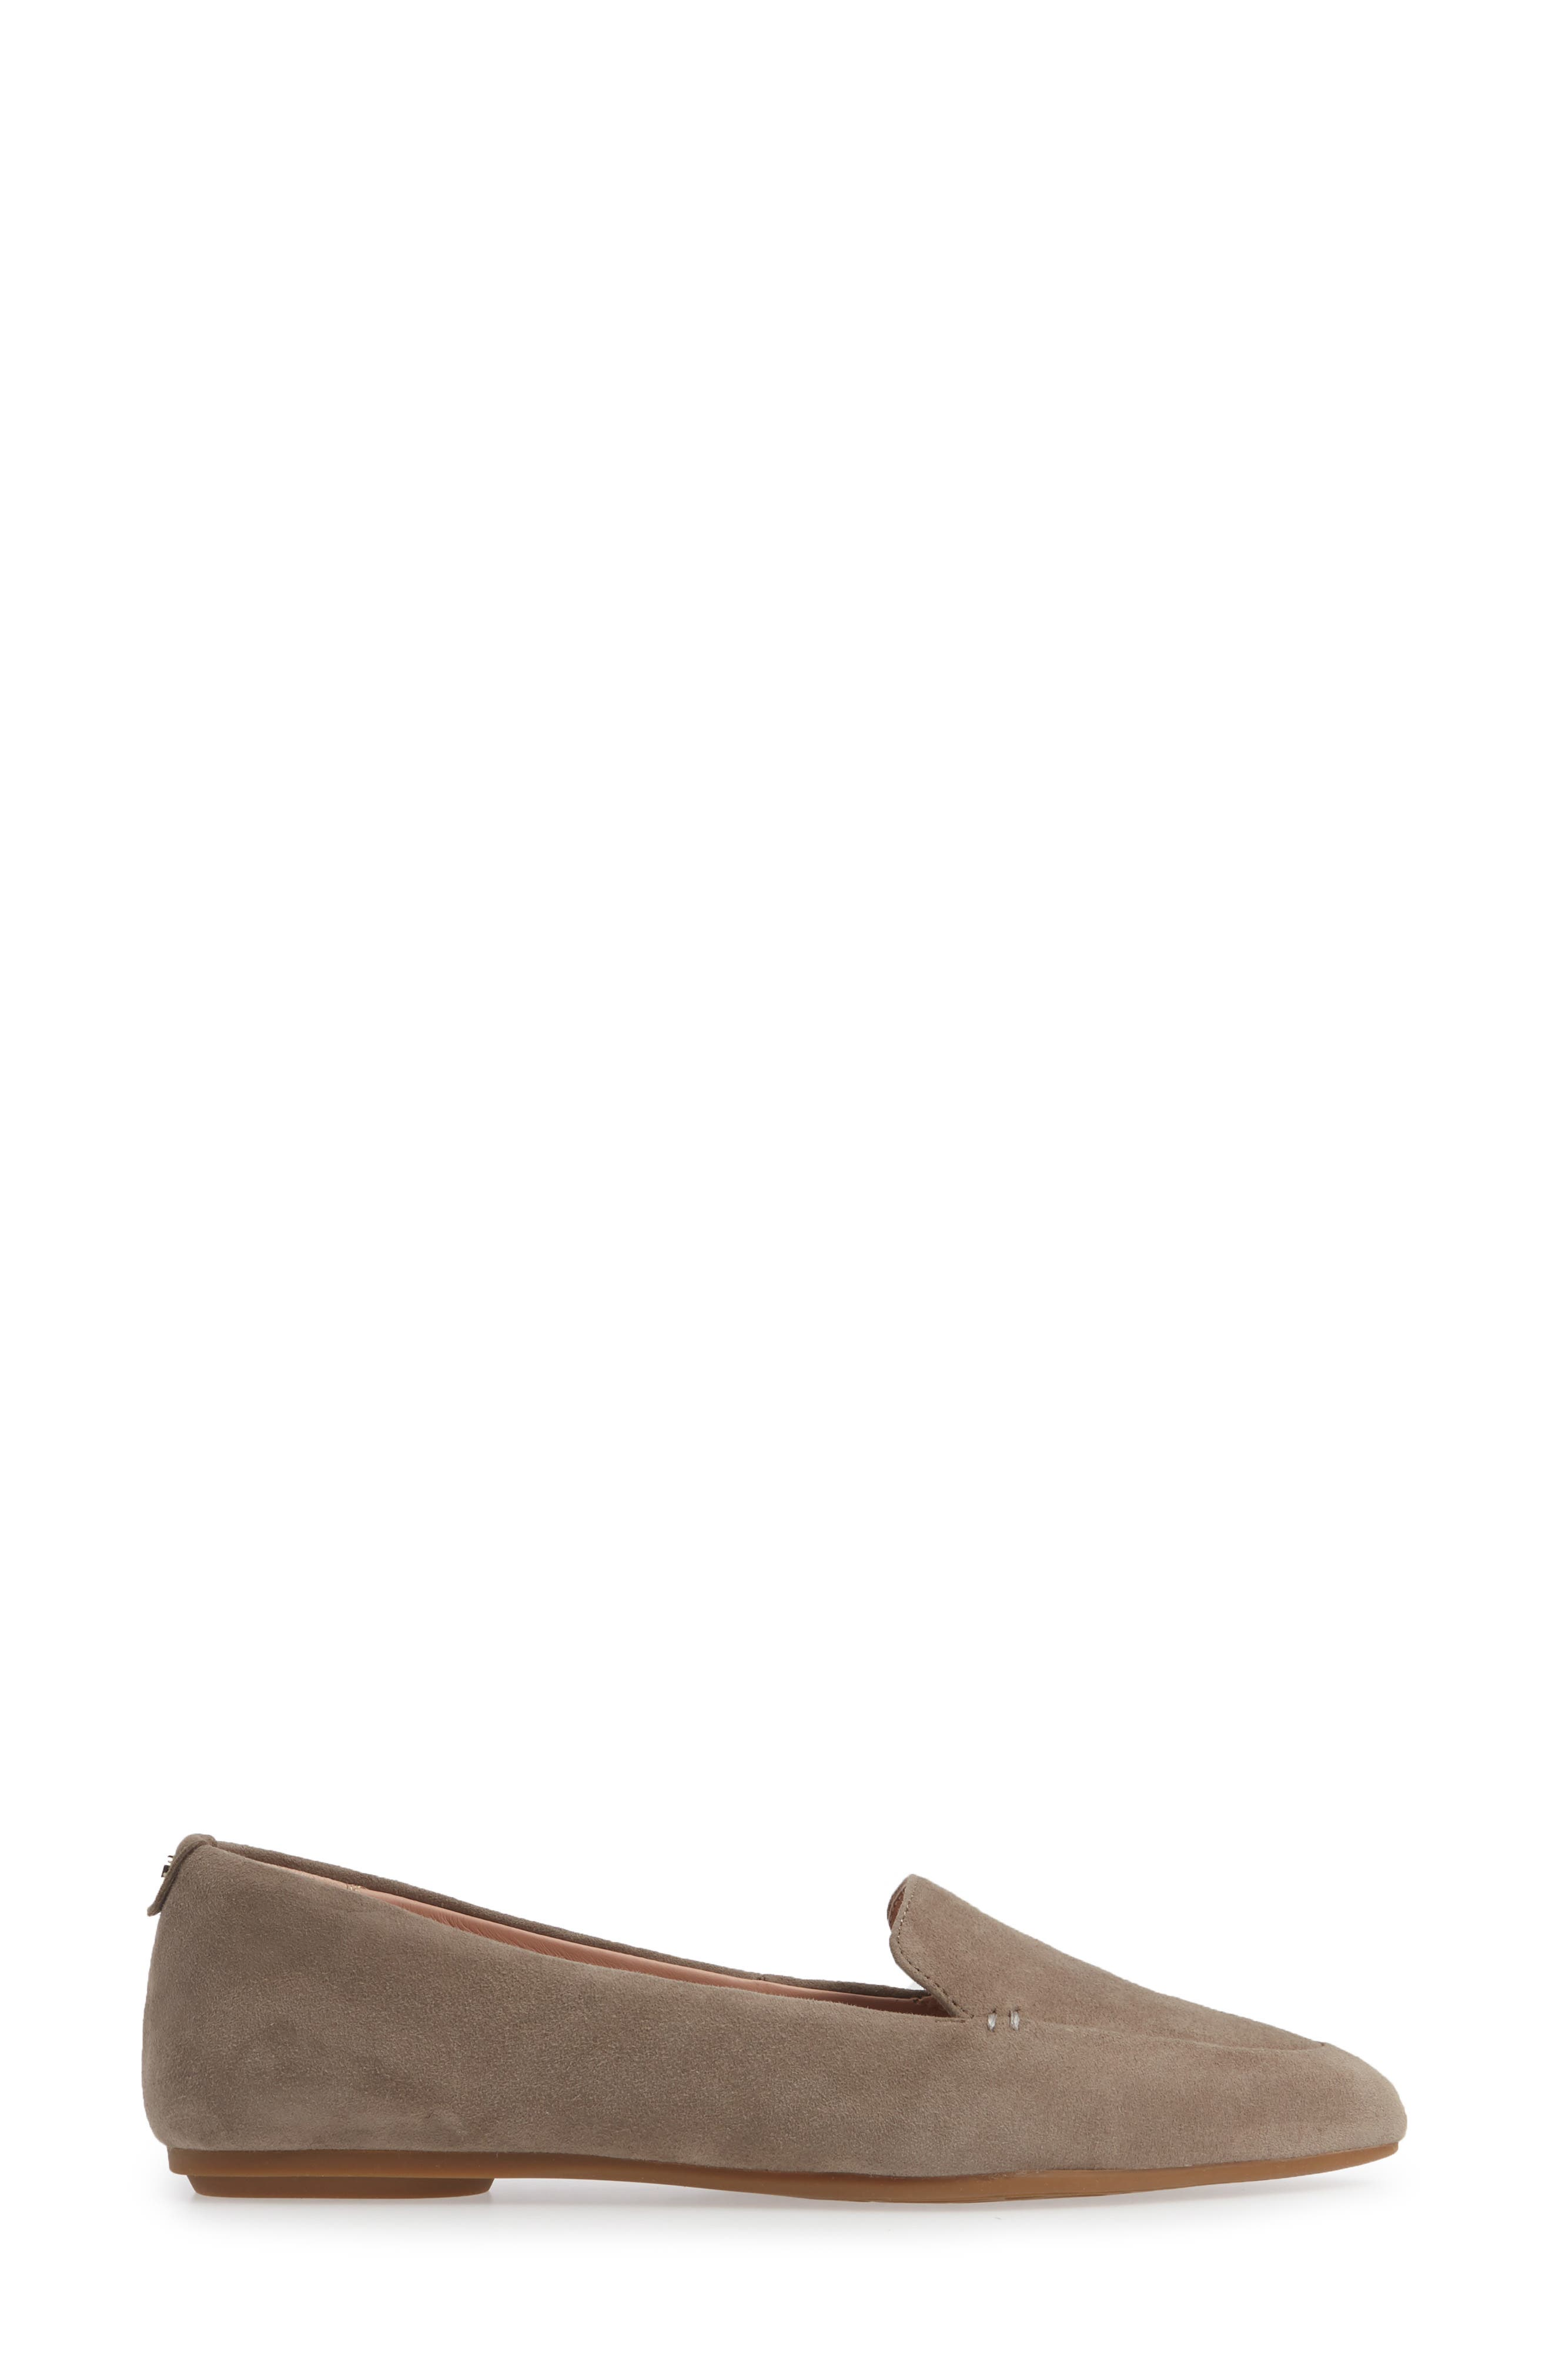 TARYN ROSE, Faye Pointy Toe Loafer, Alternate thumbnail 3, color, CLAY SUEDE